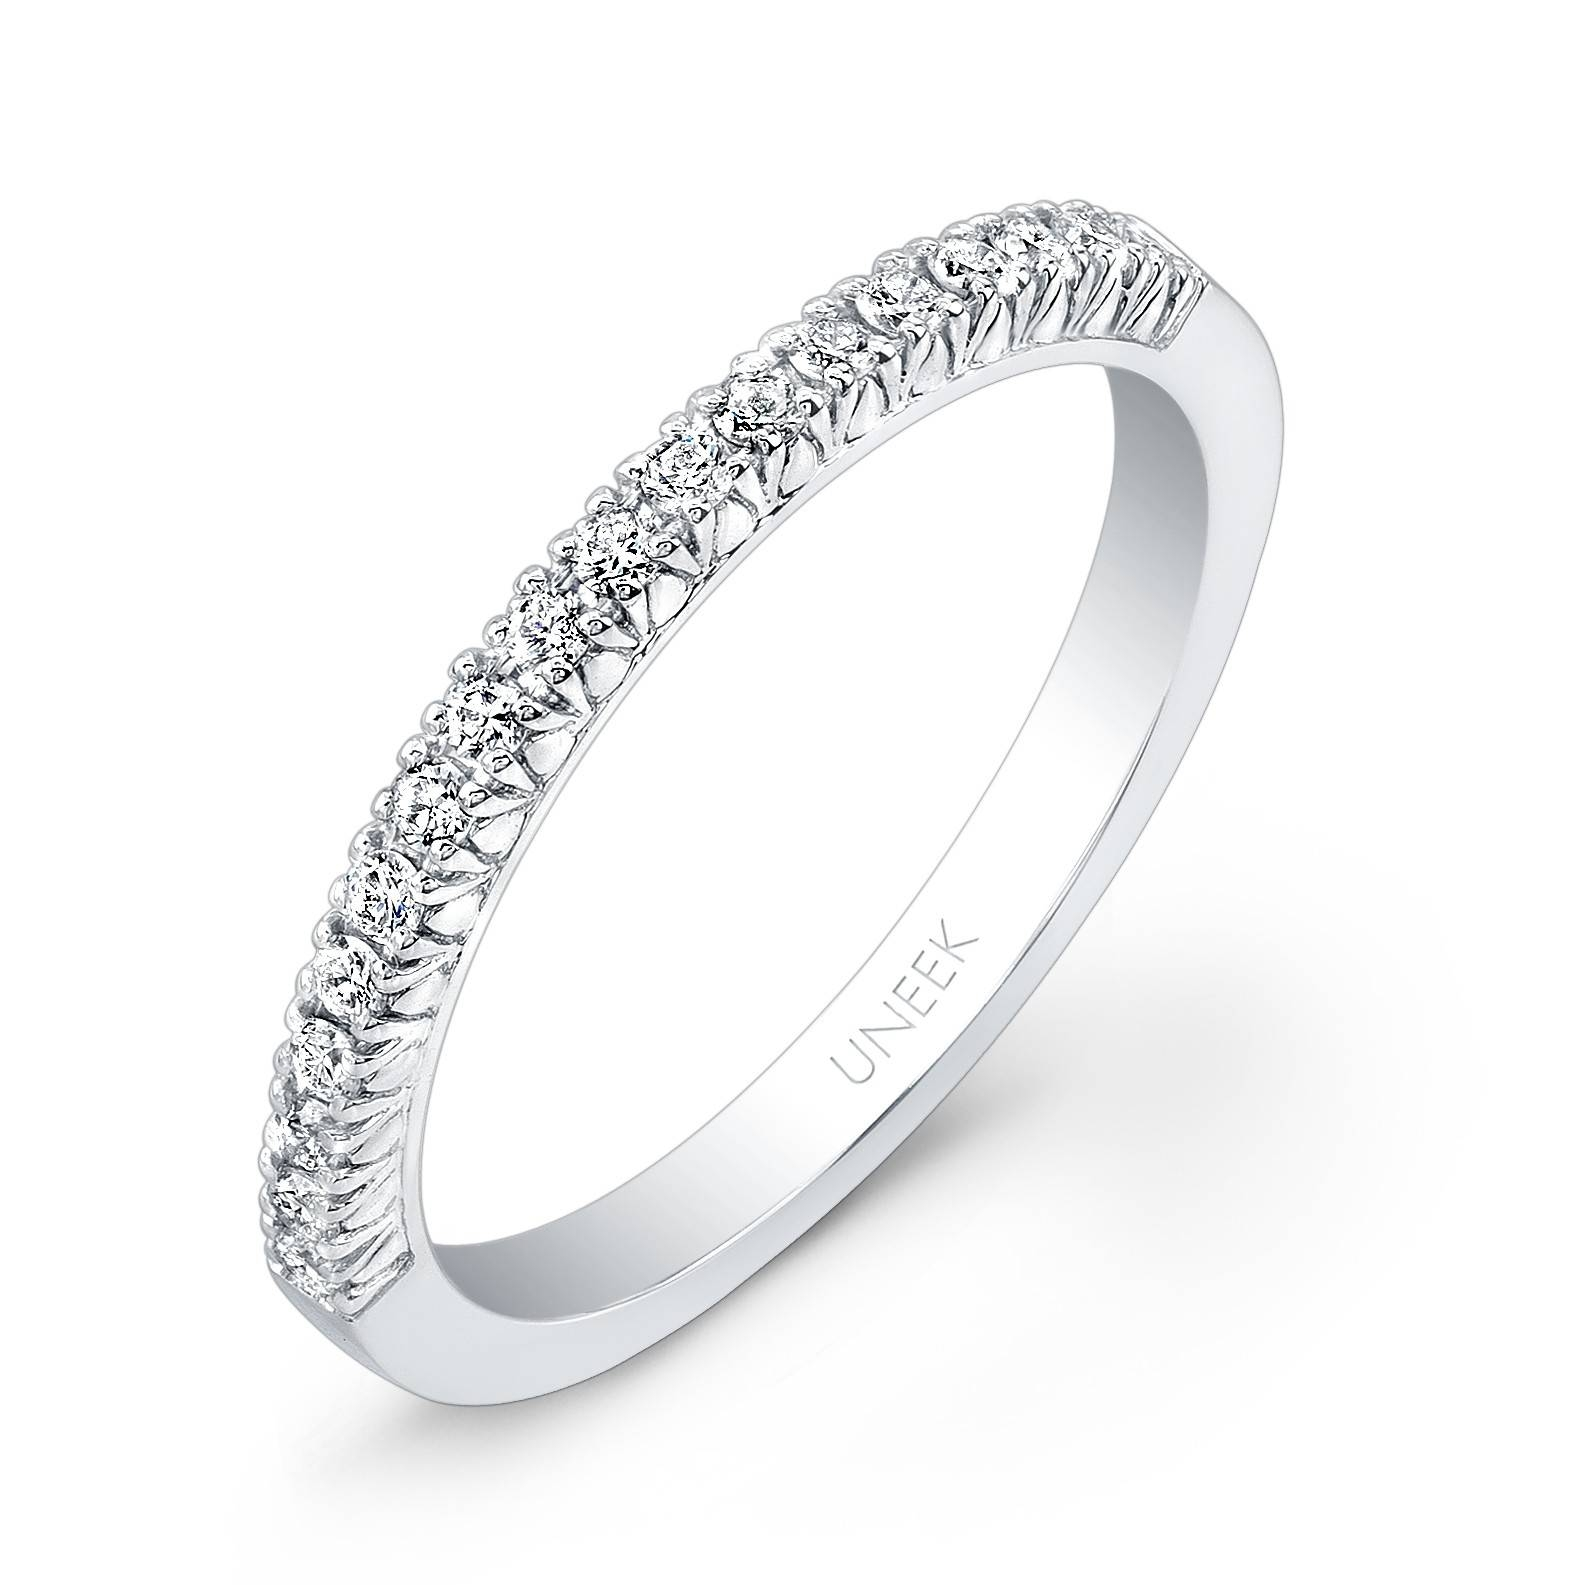 Uneek 18 Diamond French Pave Wedding Band In 14K W With Regard To French Pave Wedding Bands (View 15 of 15)